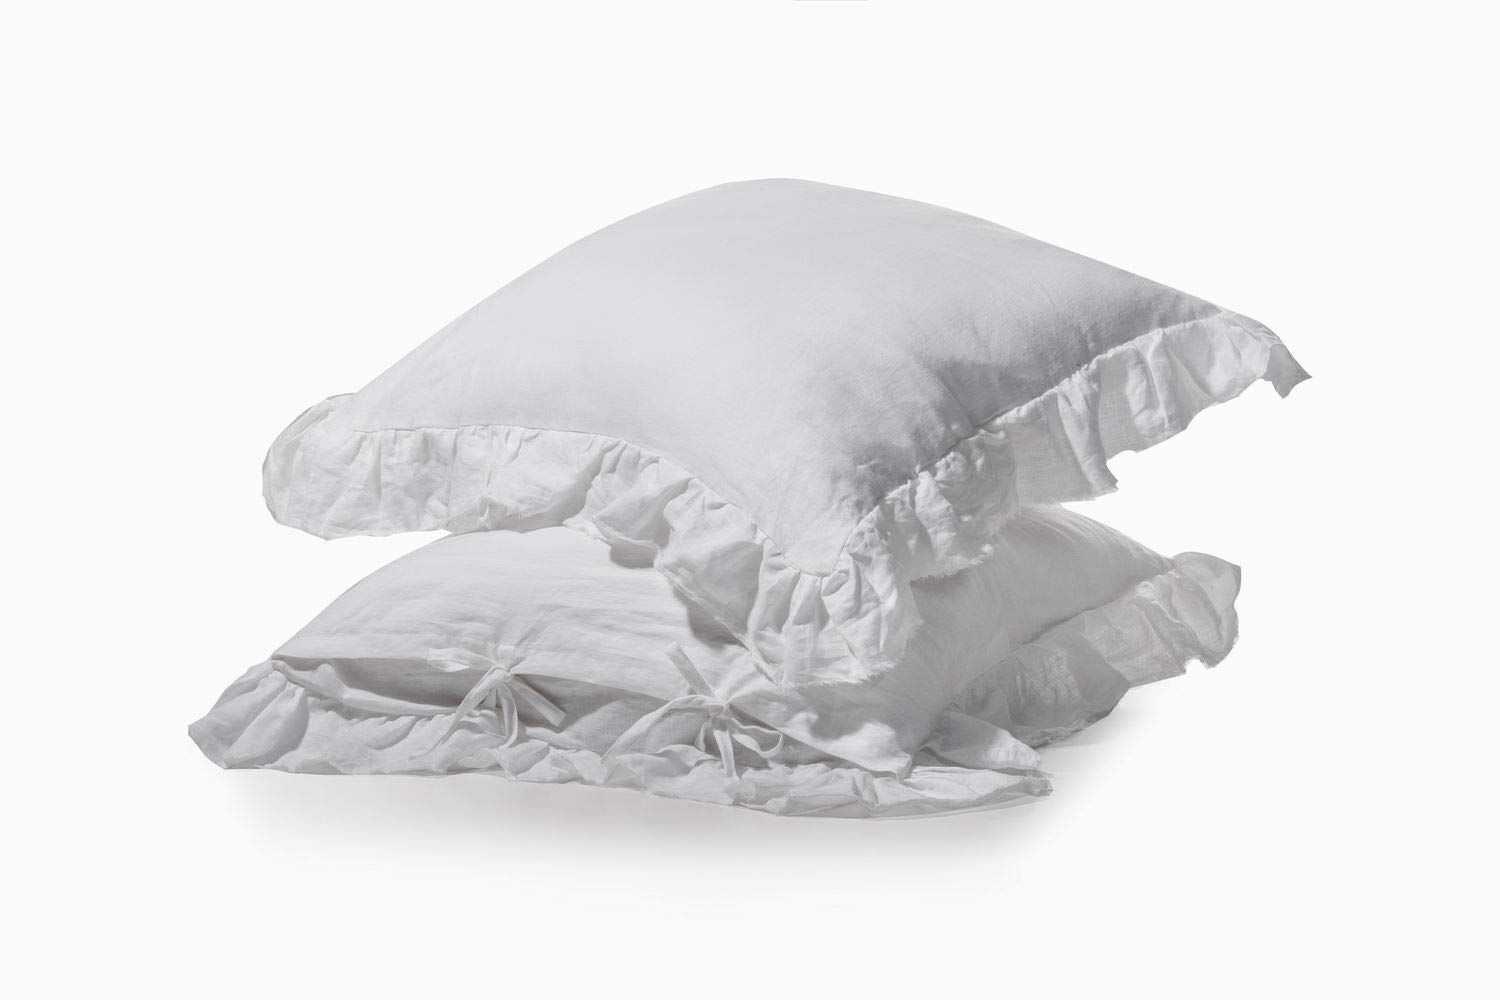 meadow park Stone Washed French Linen European Pillow Sham, Set of 2 Pieces, 26'' x 26'' Square Euro Sham, Super Soft, Frayed Edge,Ties Closure, White Color